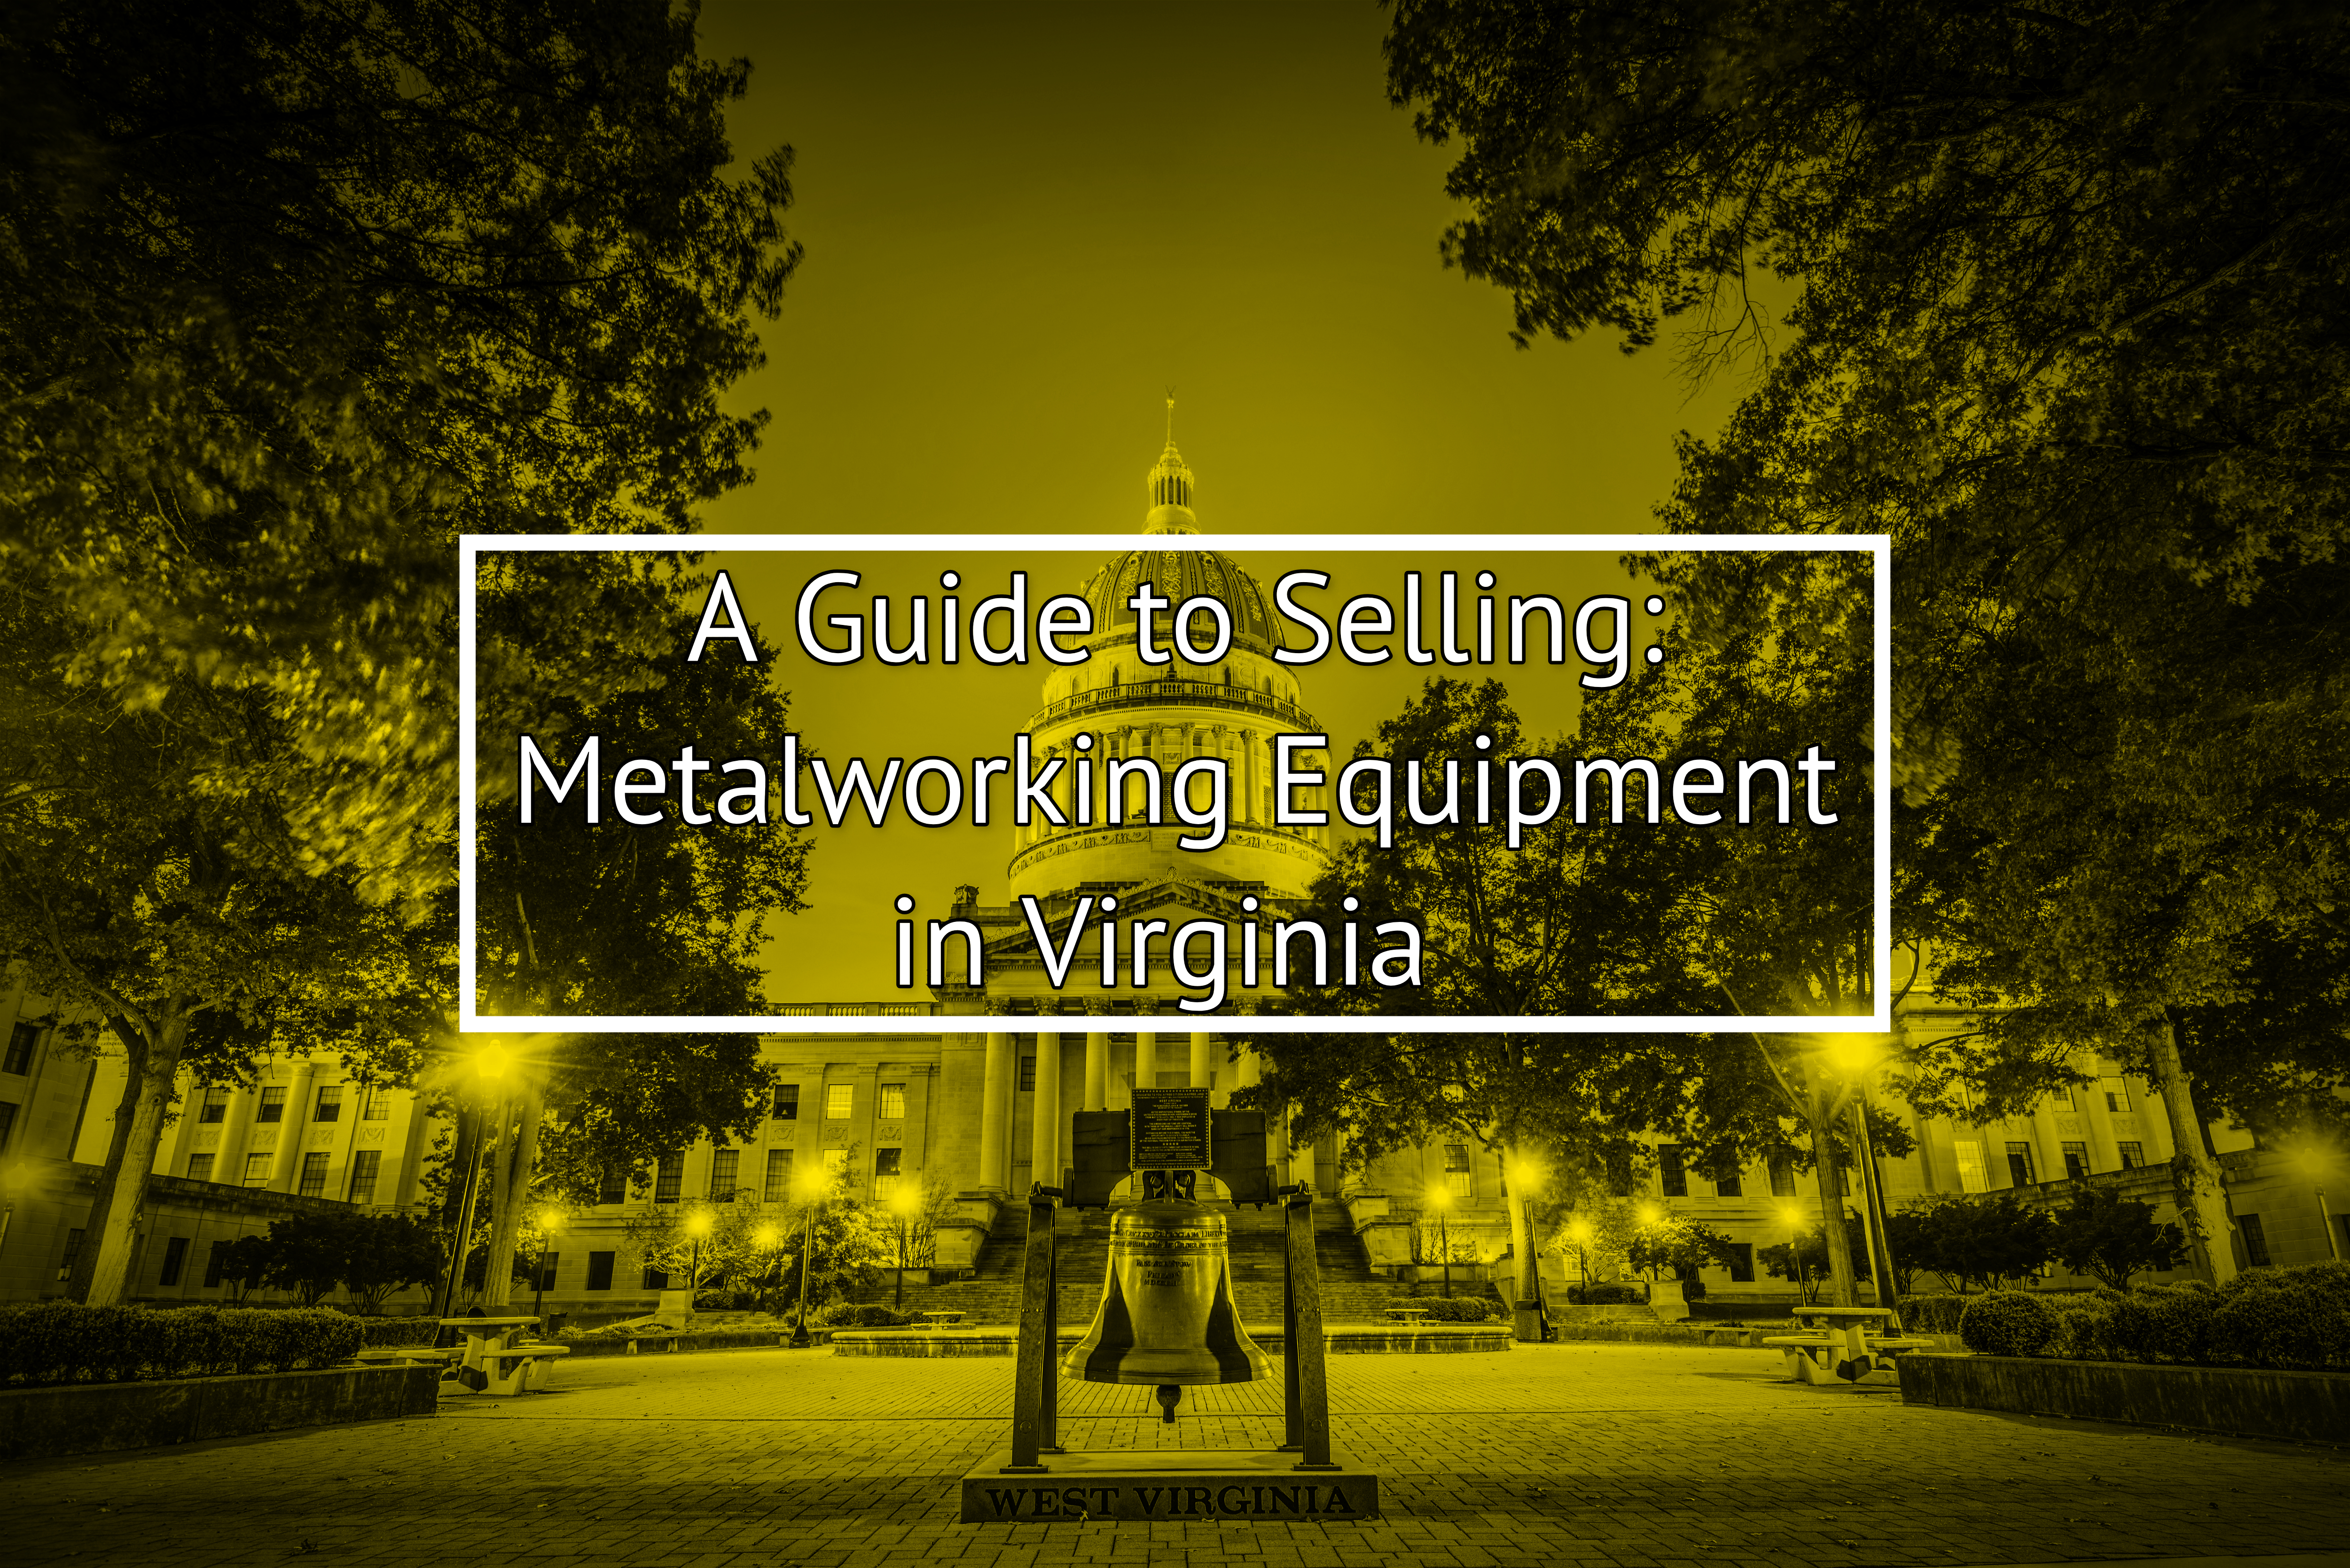 A Guide to Selling Metalworking Equipment in Virginia